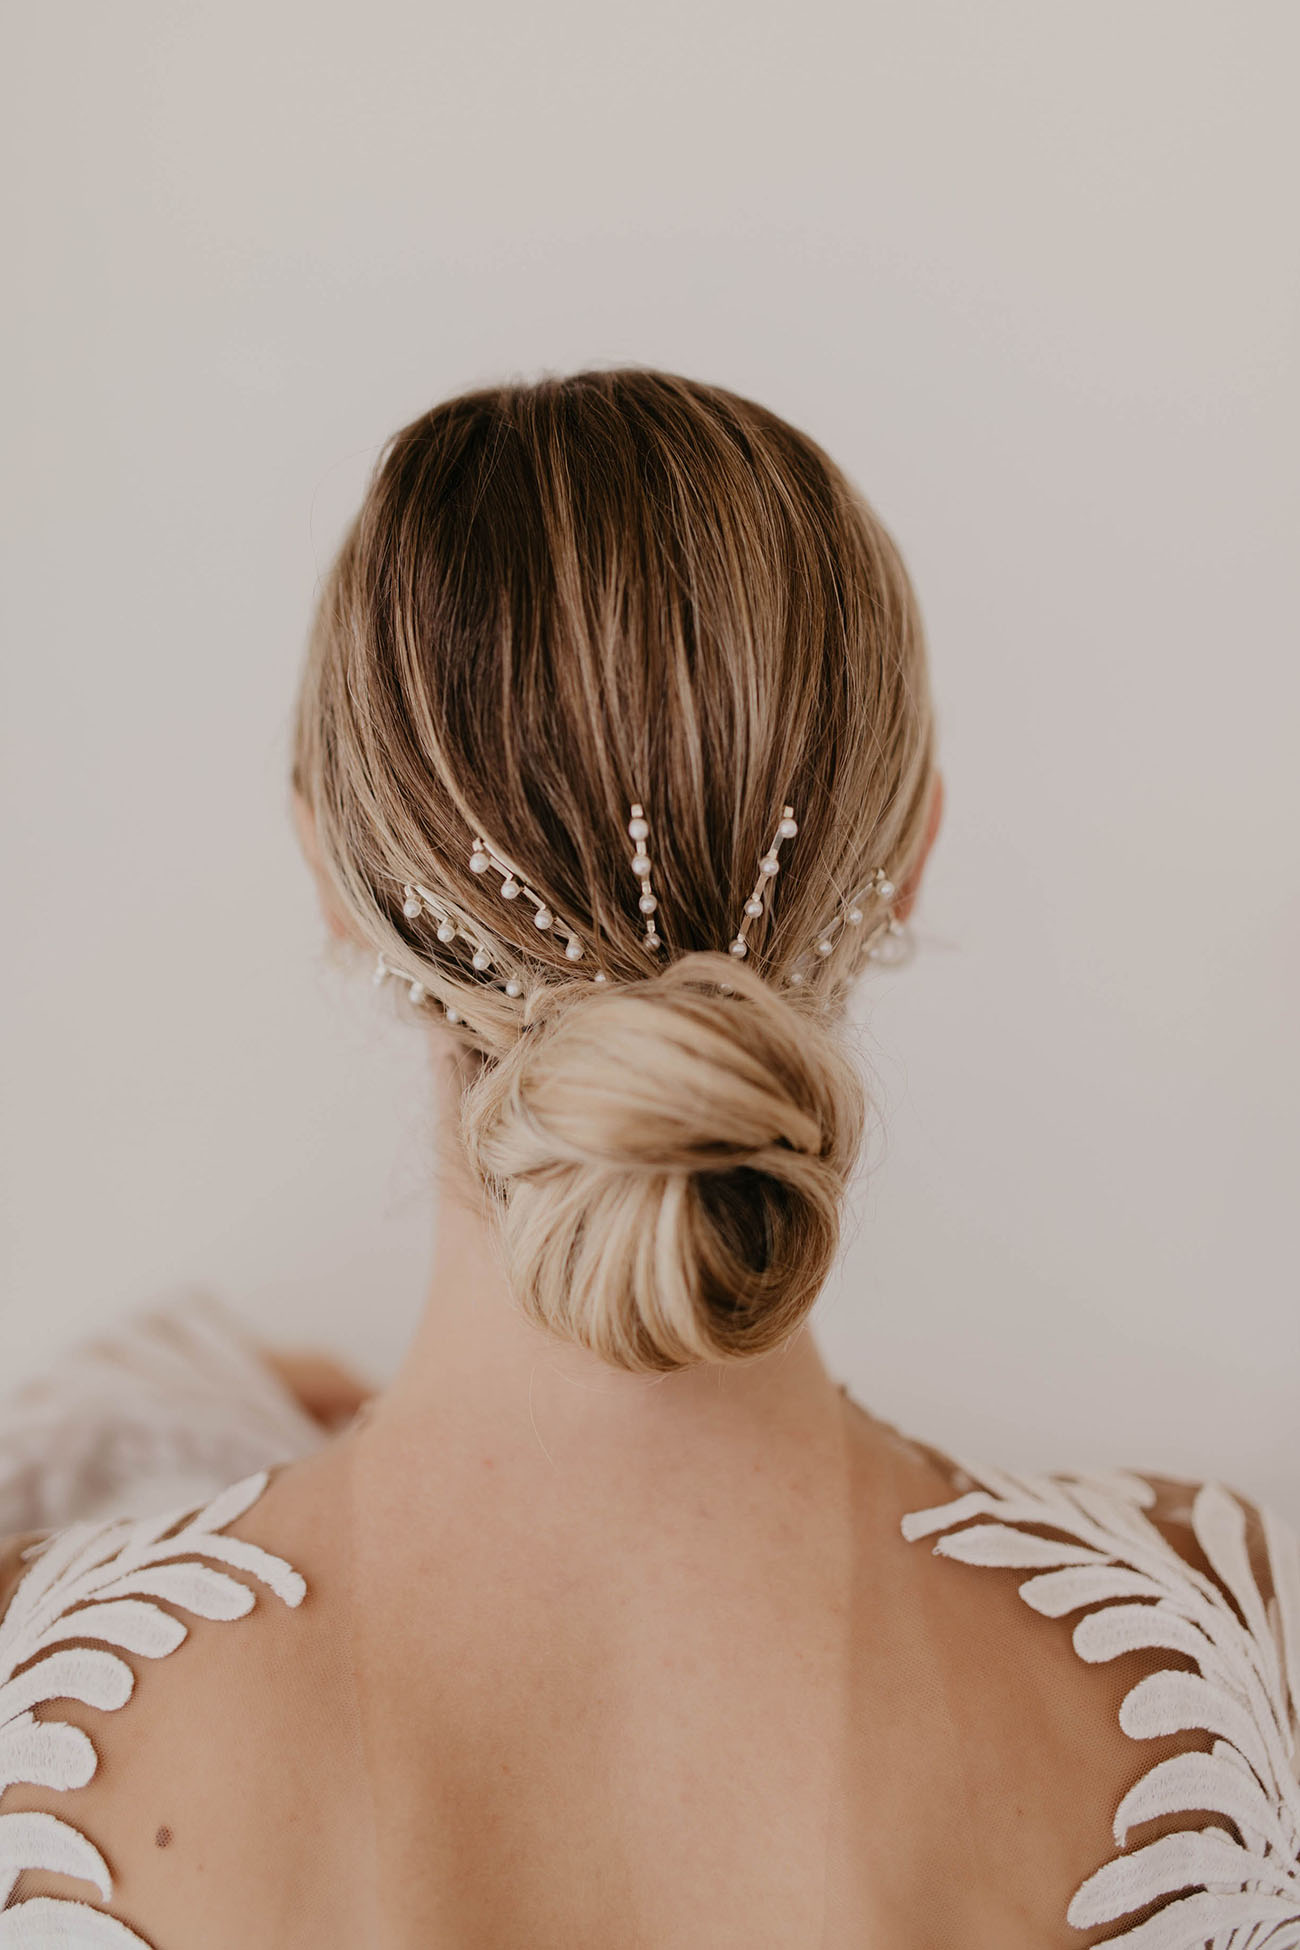 Bows, Barrettes, Bars, Oh My! All the Popular Hair Trends for Fall Bridal Hairstyles